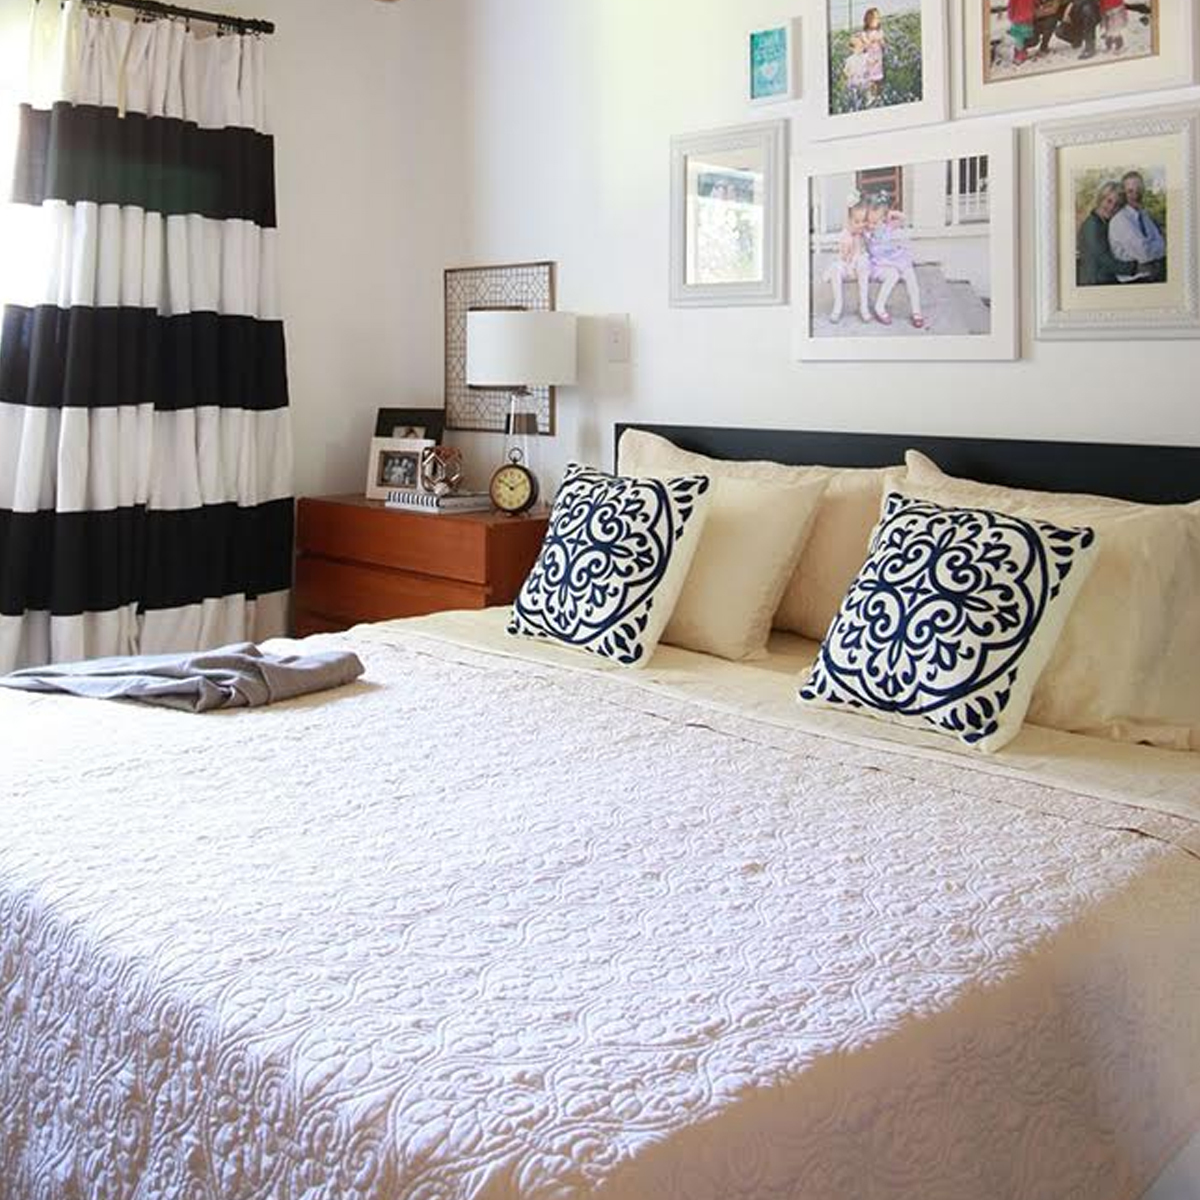 Master bedroom with quilted bedding and gallery wall photo